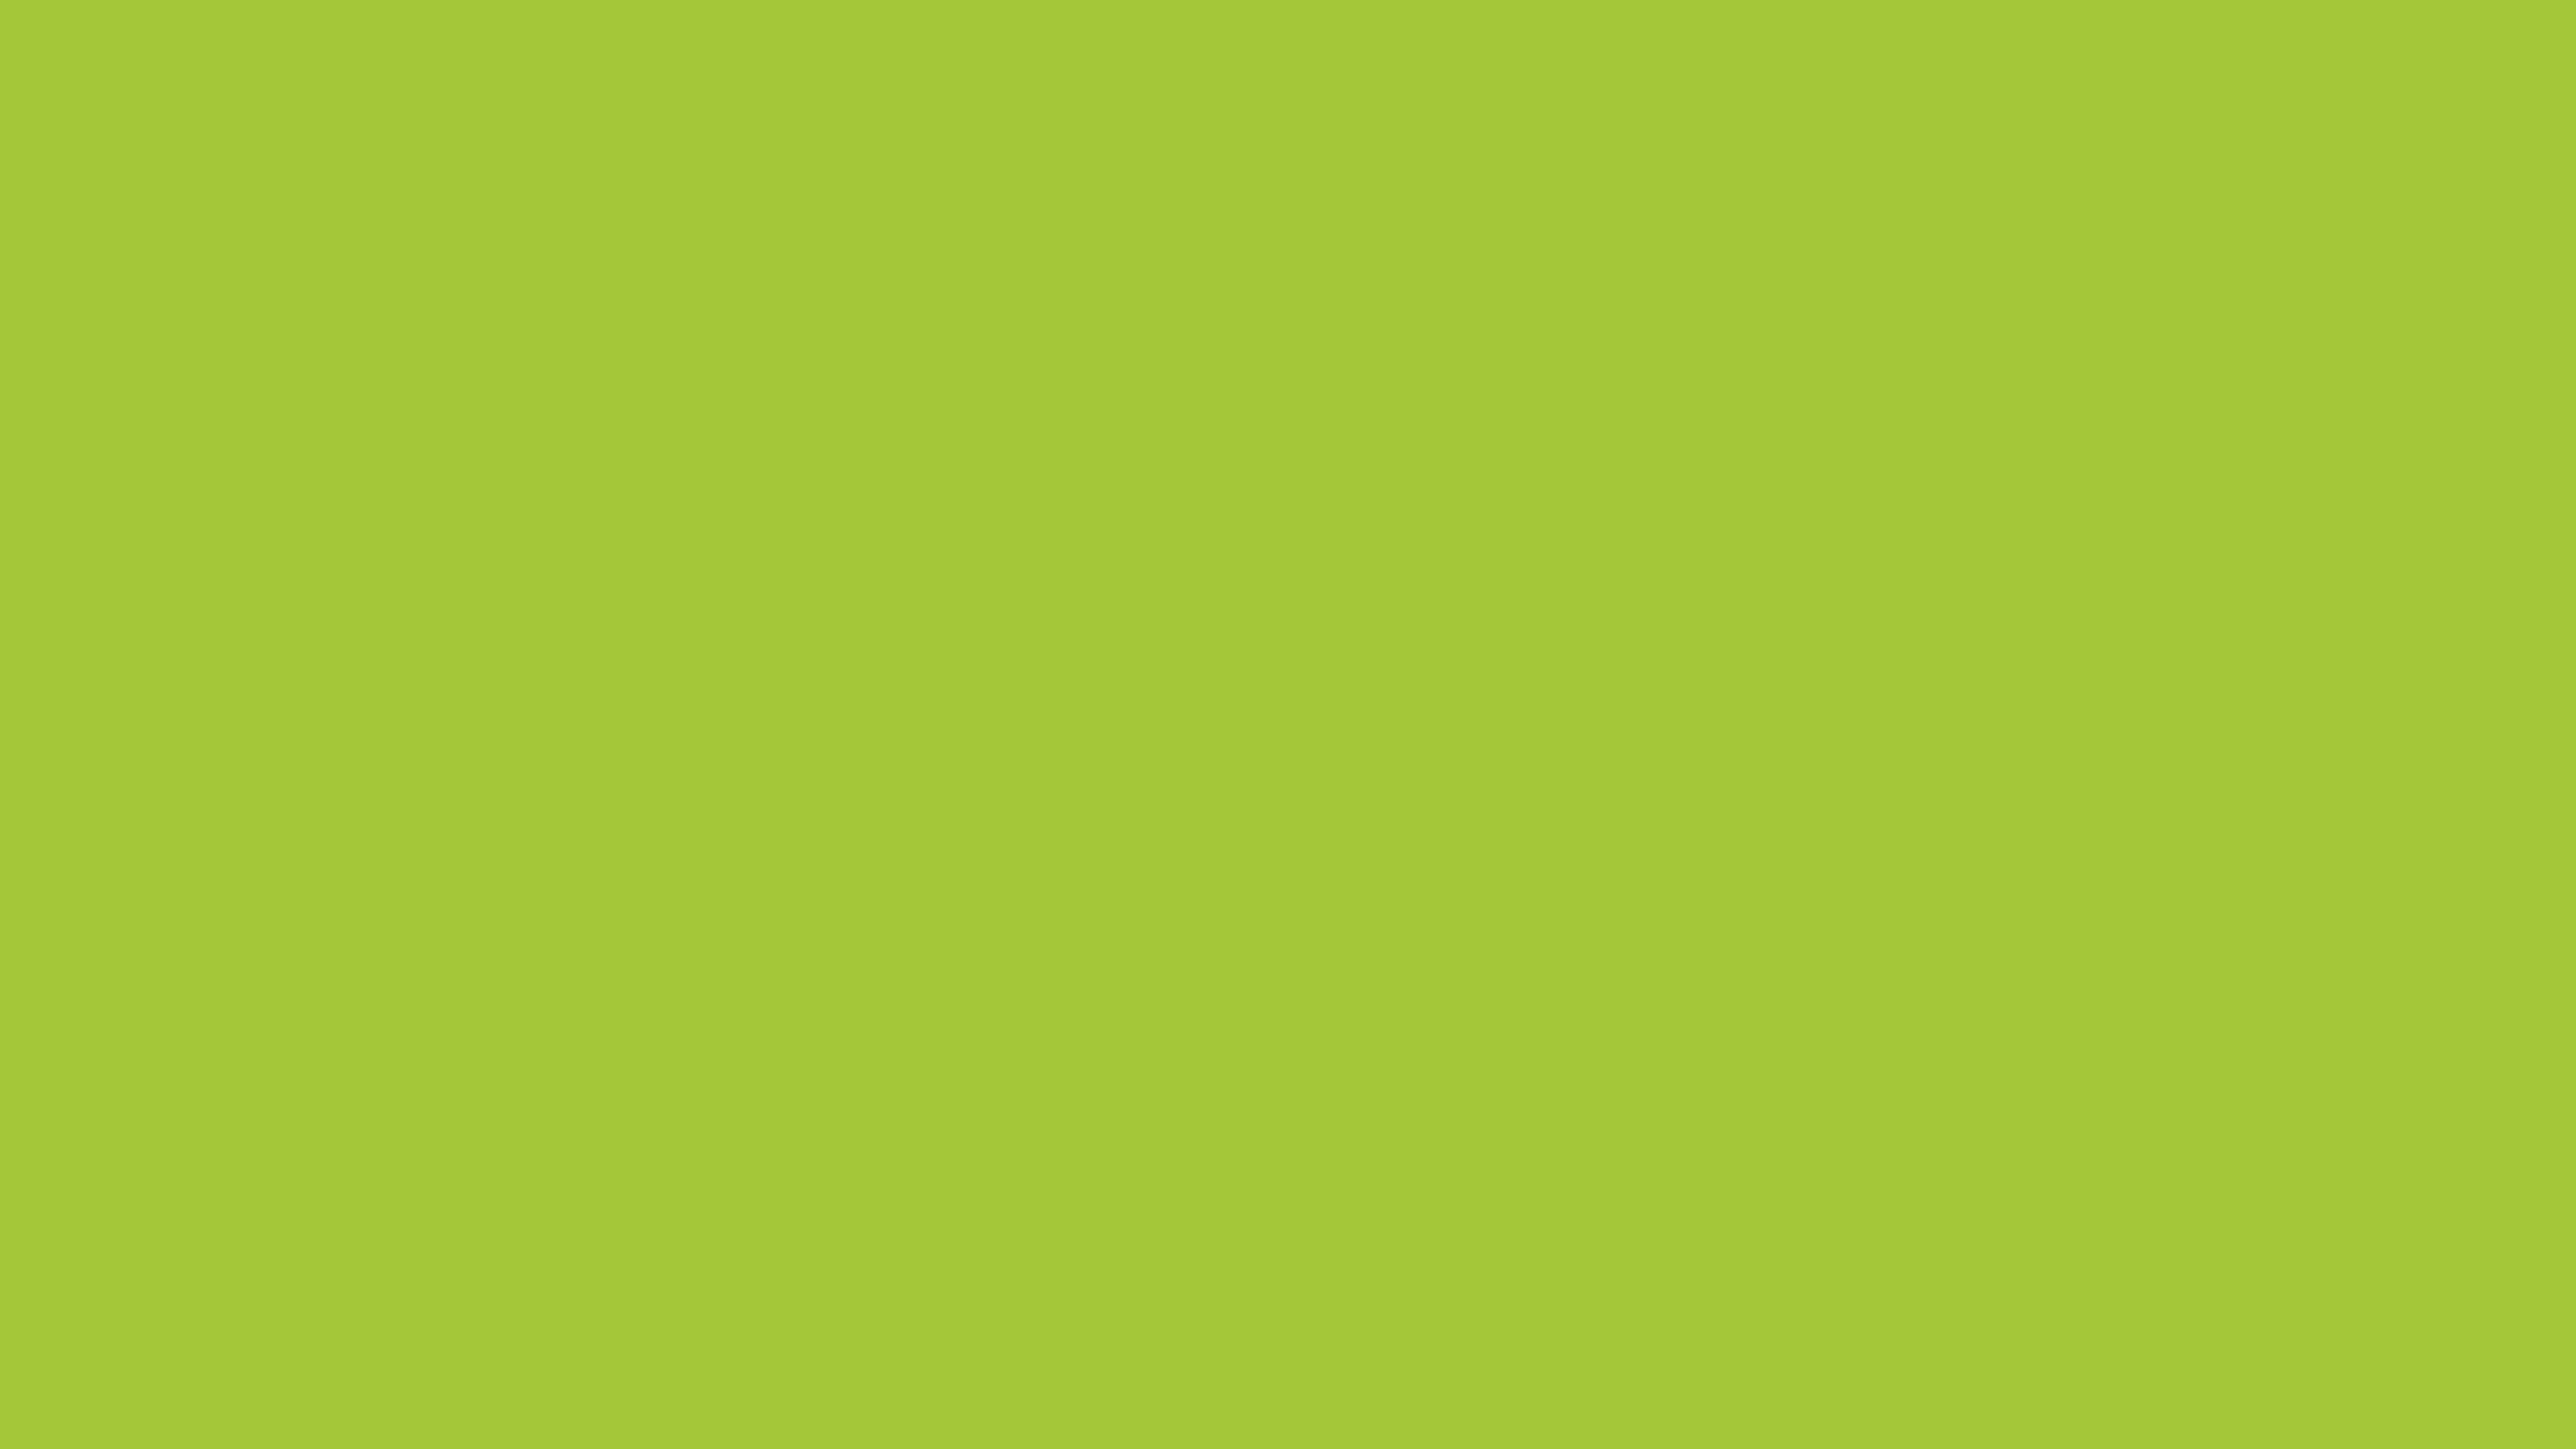 3840x2160 Android Green Solid Color Background